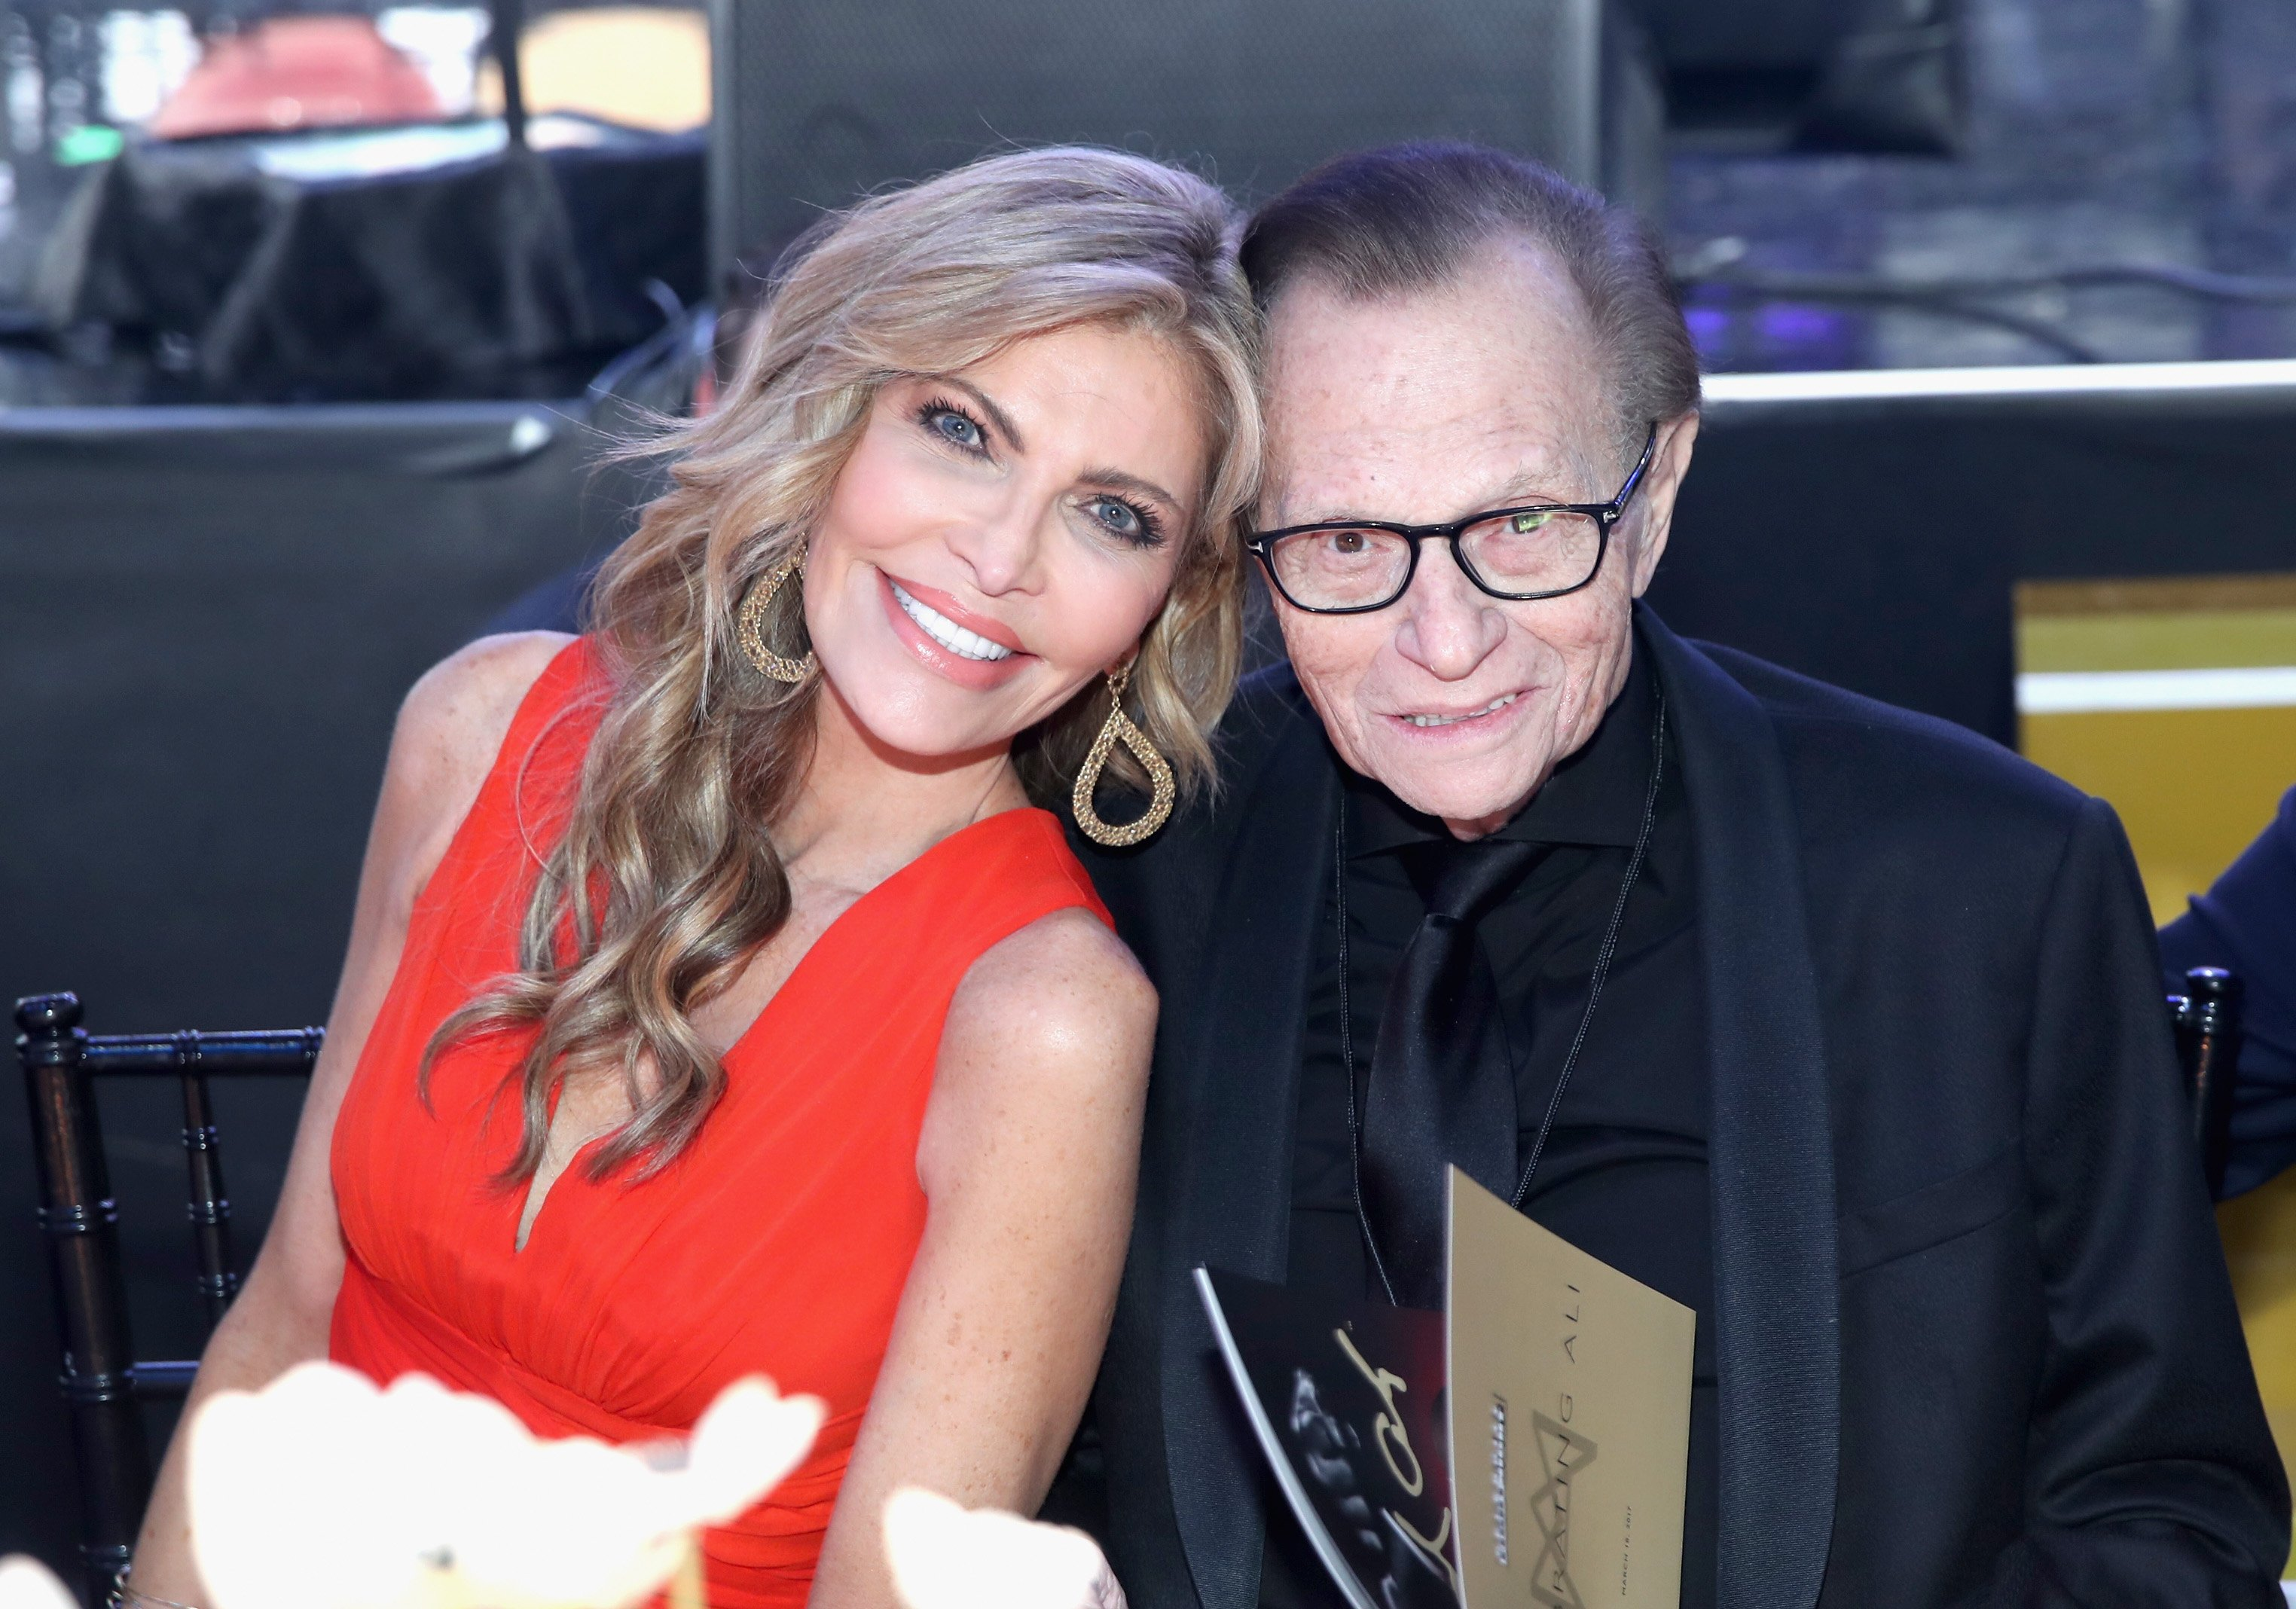 Shawn and Larry King at Muhammad Ali's Celebrity Fight Night XXIII on March 18, 2017 in Phoenix, Arizona | Photo: Getty Images